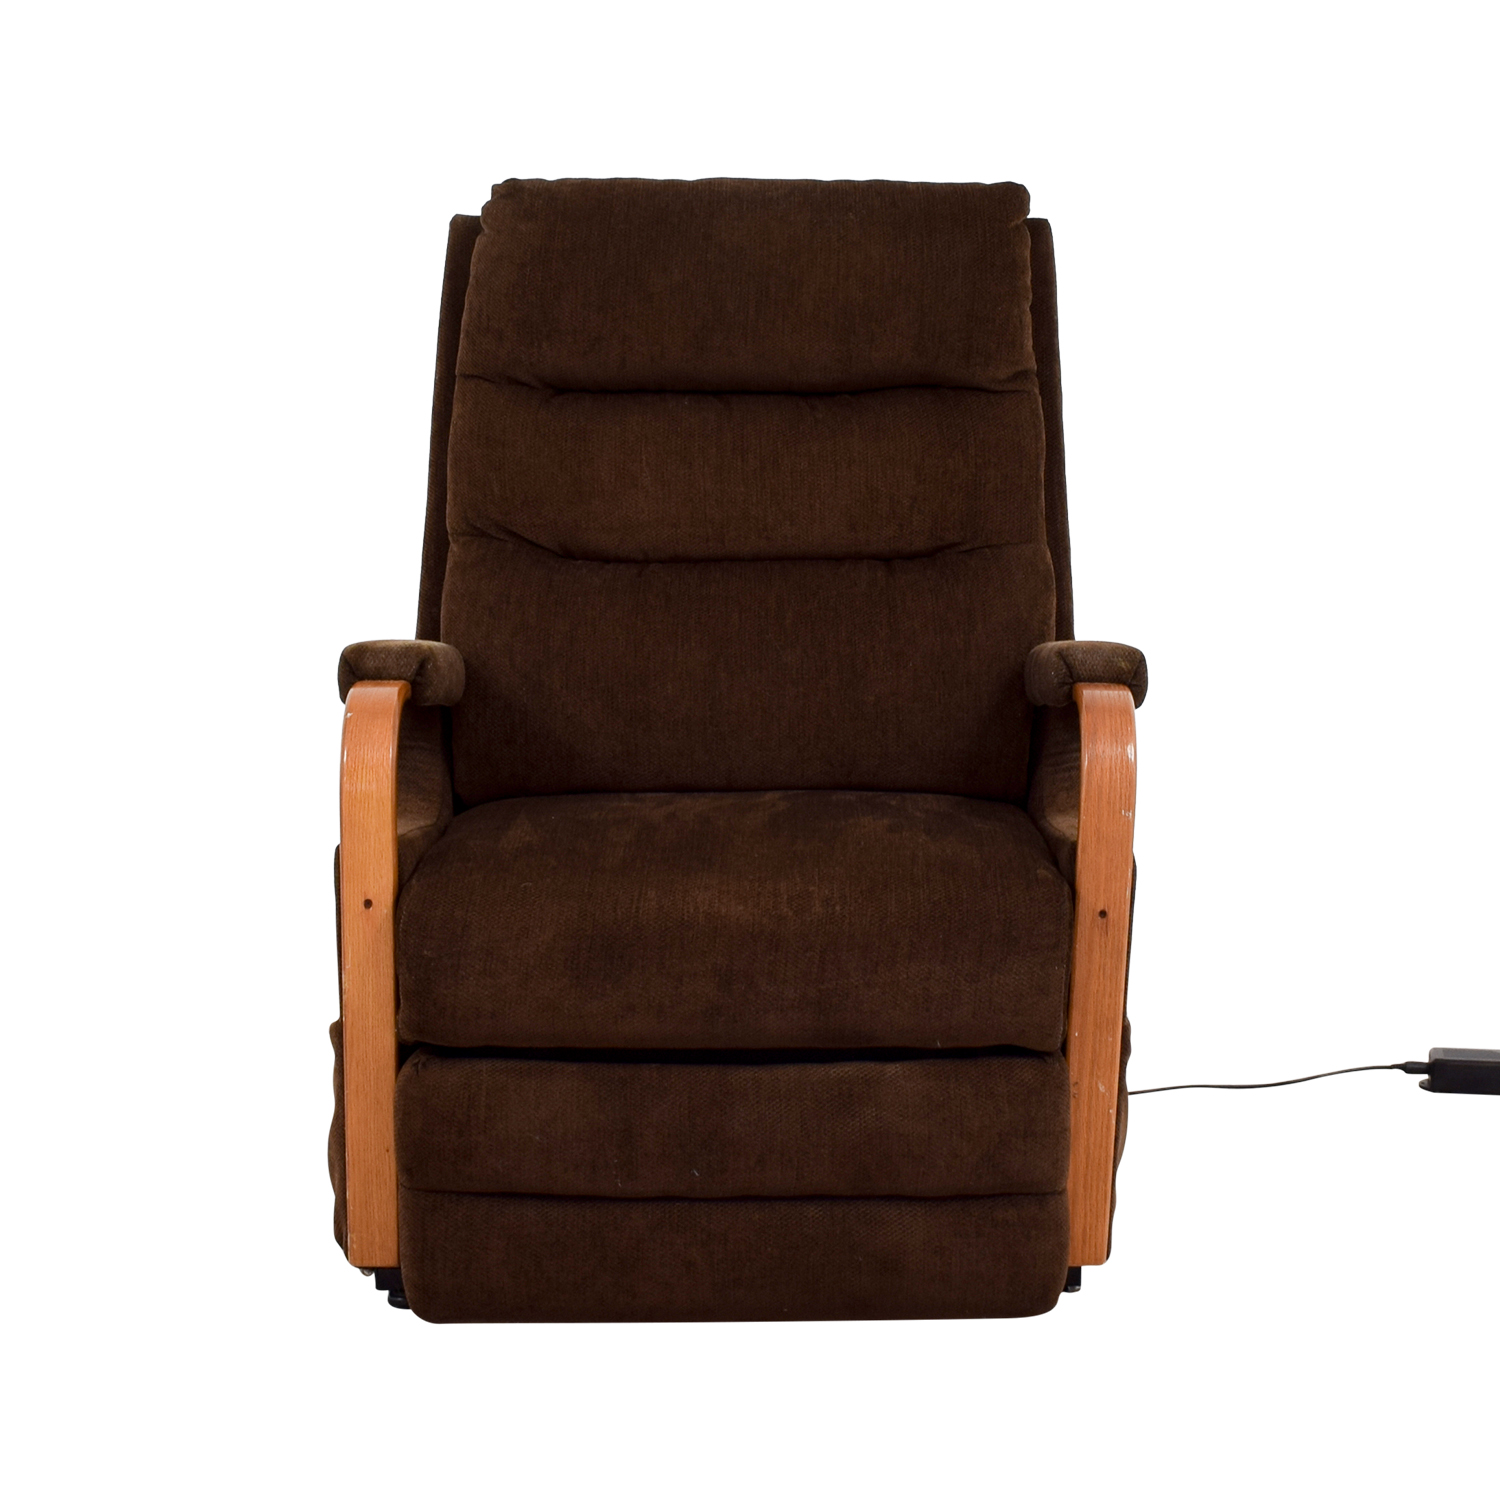 Recliners Used Recliners For Sale - Swivel Chairs Bobs Furniture